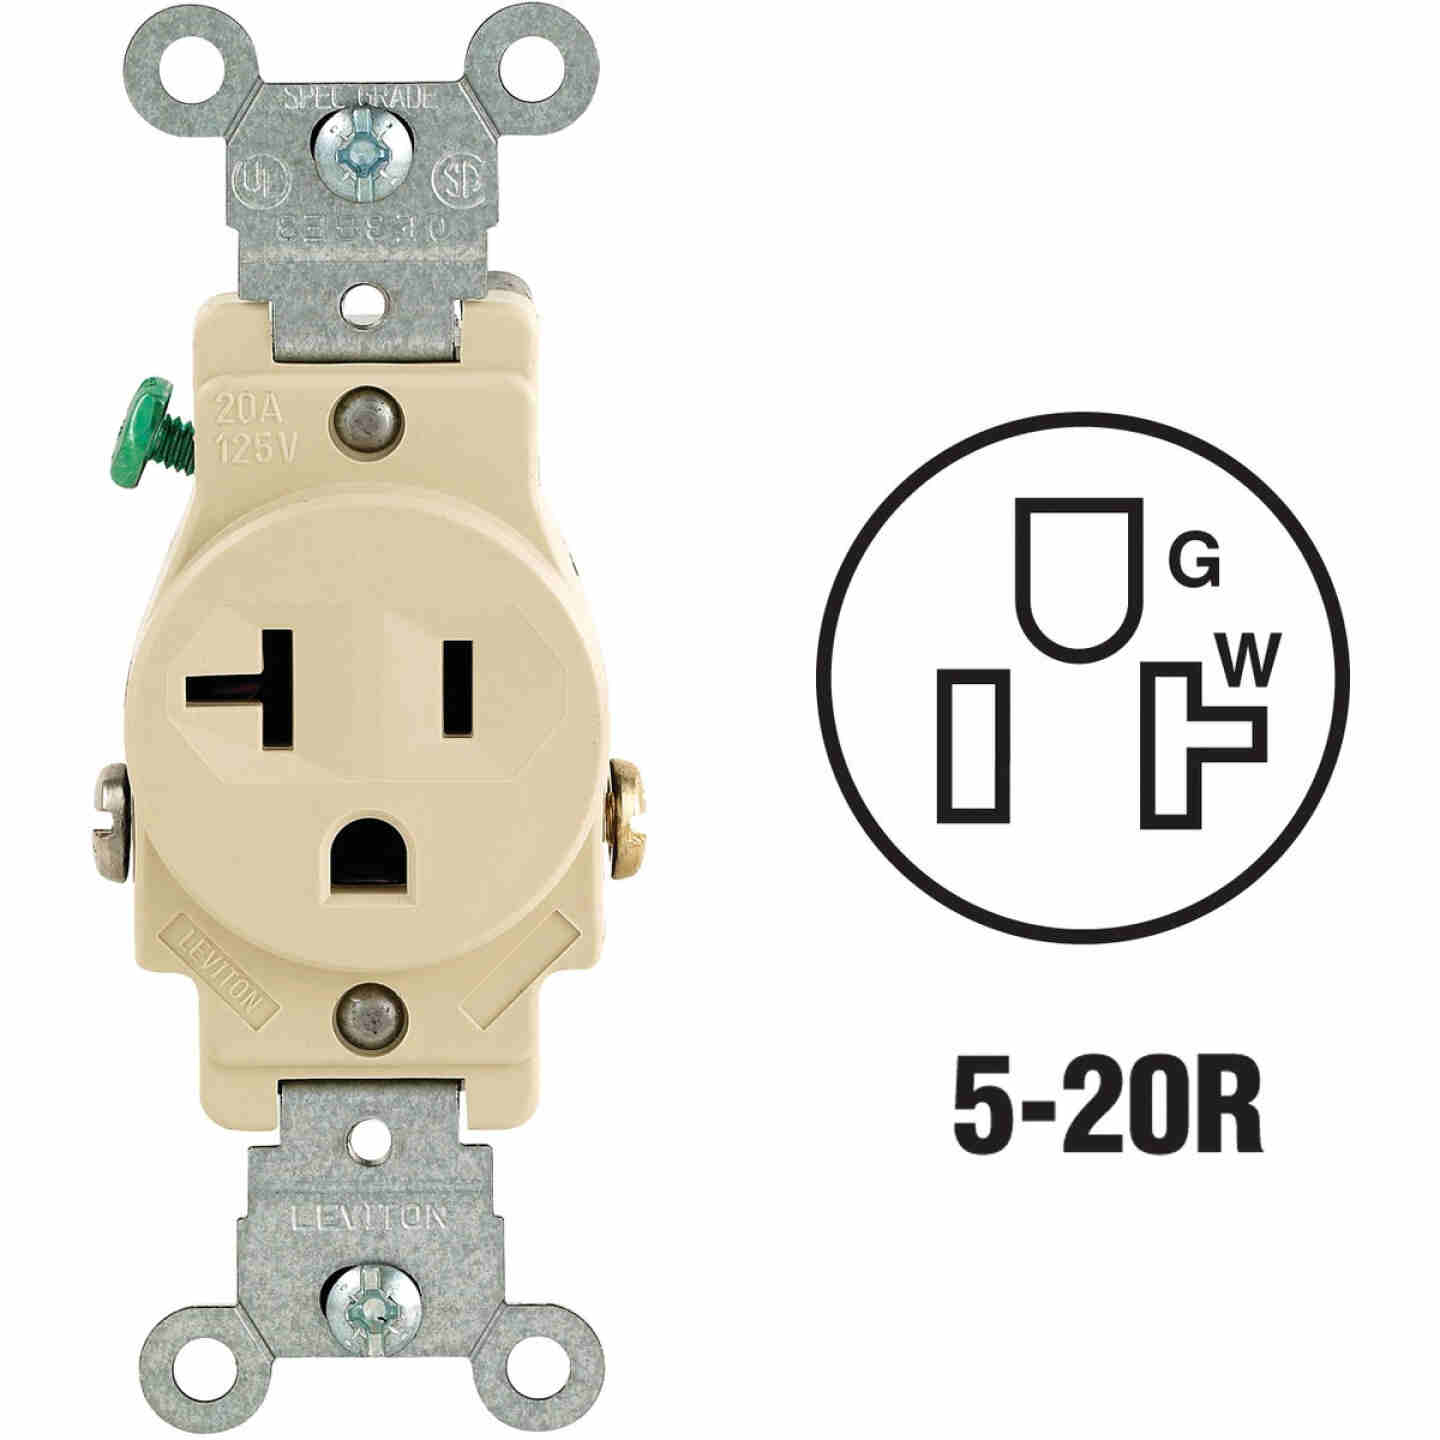 Leviton 20A Ivory Commercial Grade 5-20R Shallow Single Outlet Image 1